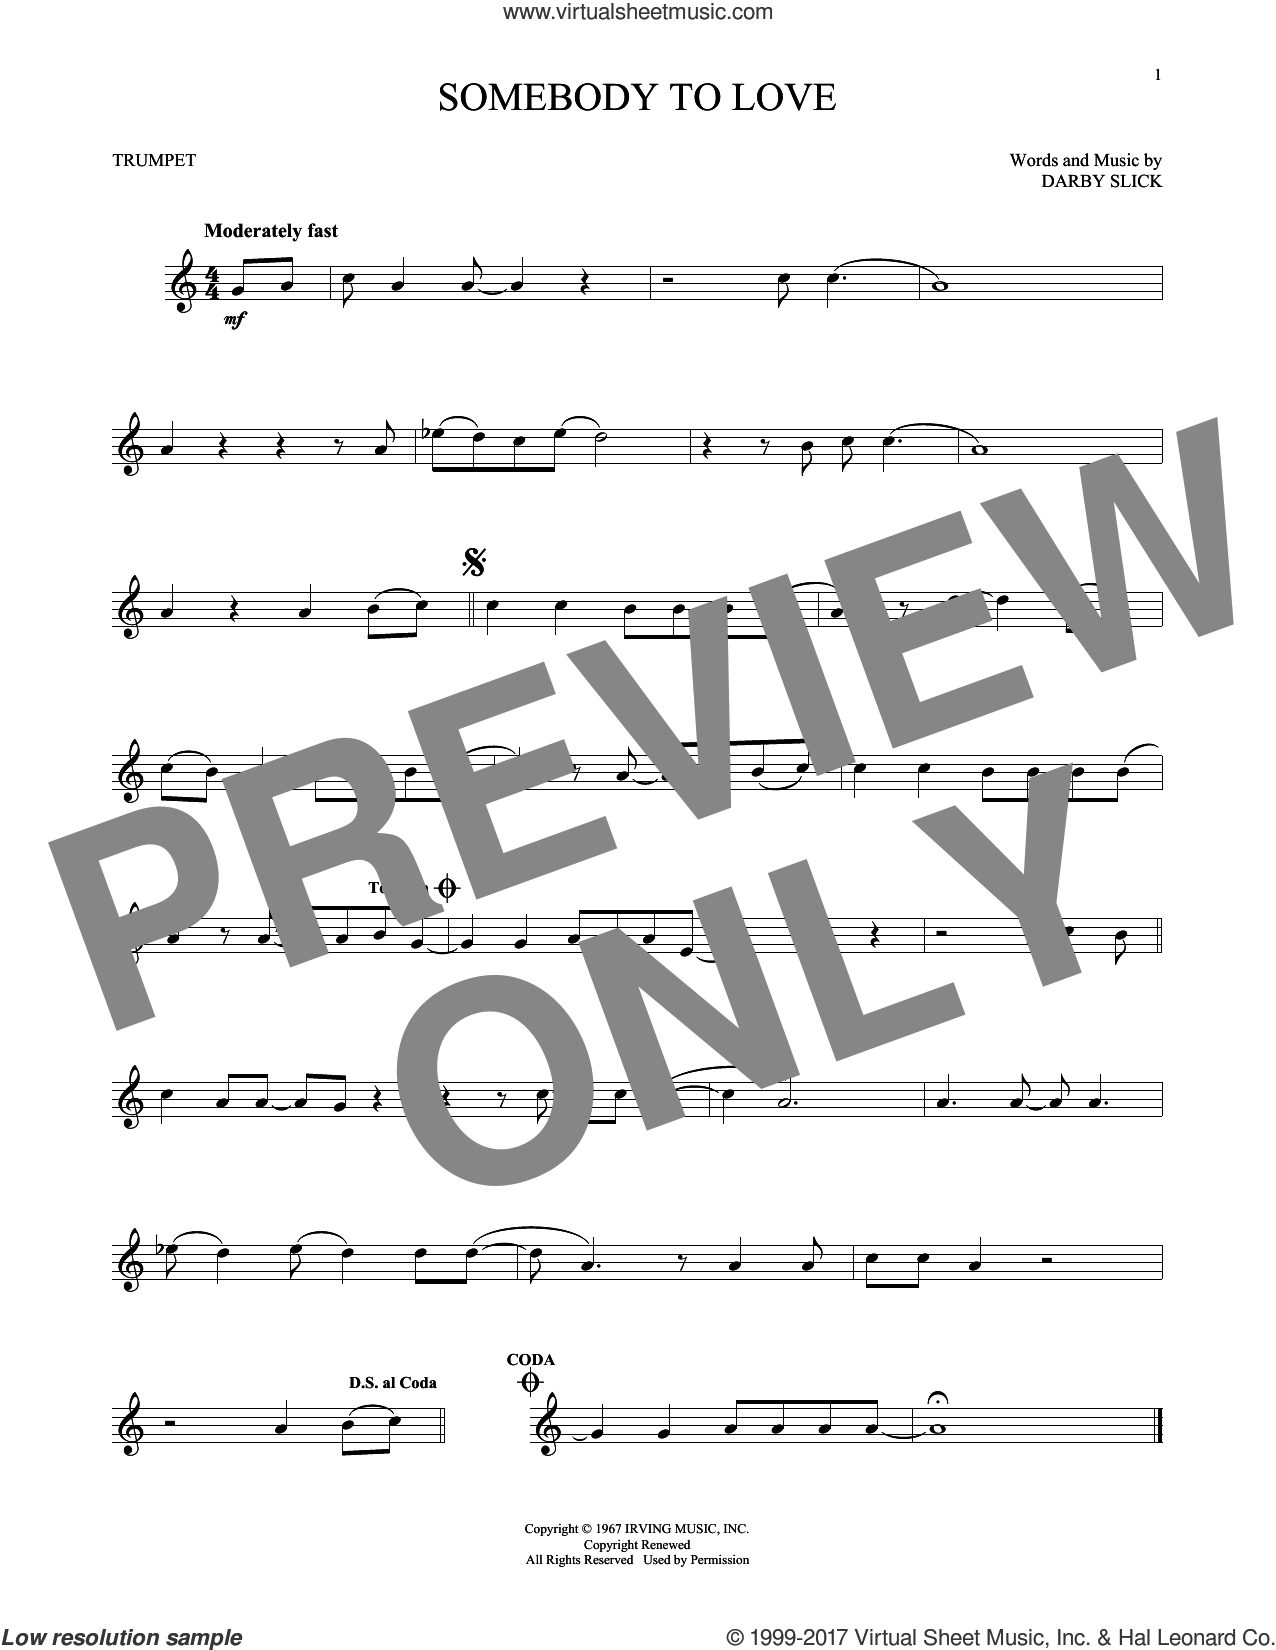 Somebody To Love sheet music for trumpet solo by Jefferson Airplane and Darby Slick, intermediate skill level